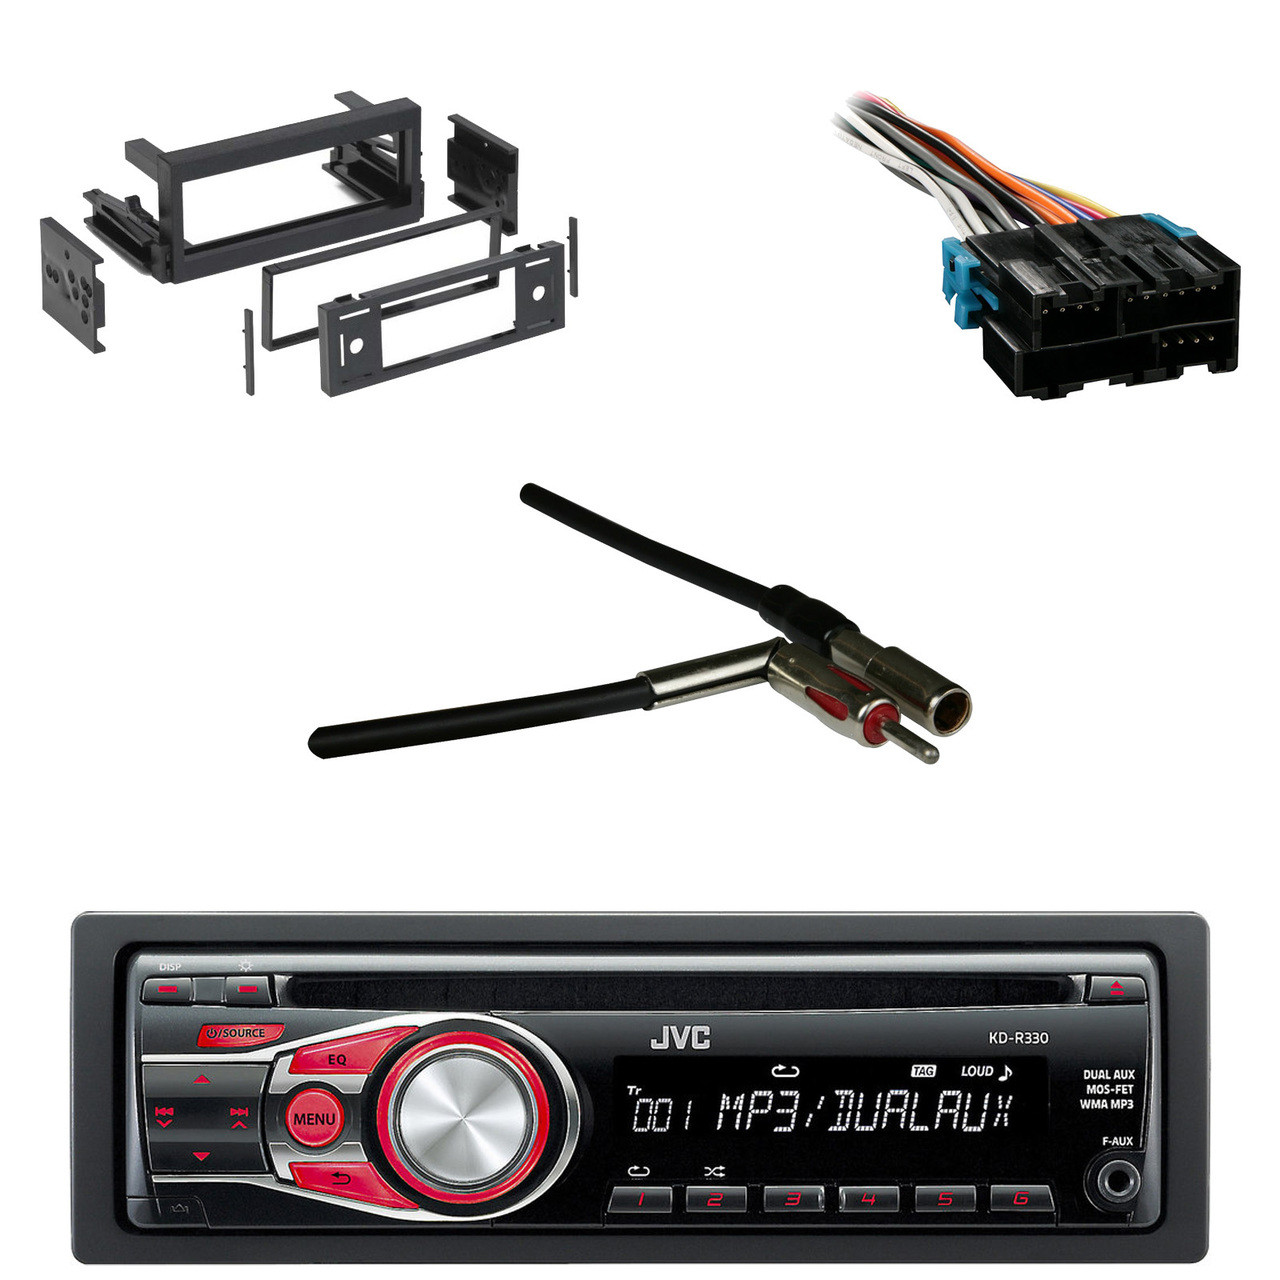 jvc kdr330 cd aux car radio antenn adapter gm wire harness gmjvc kdr330 [ 1280 x 1280 Pixel ]